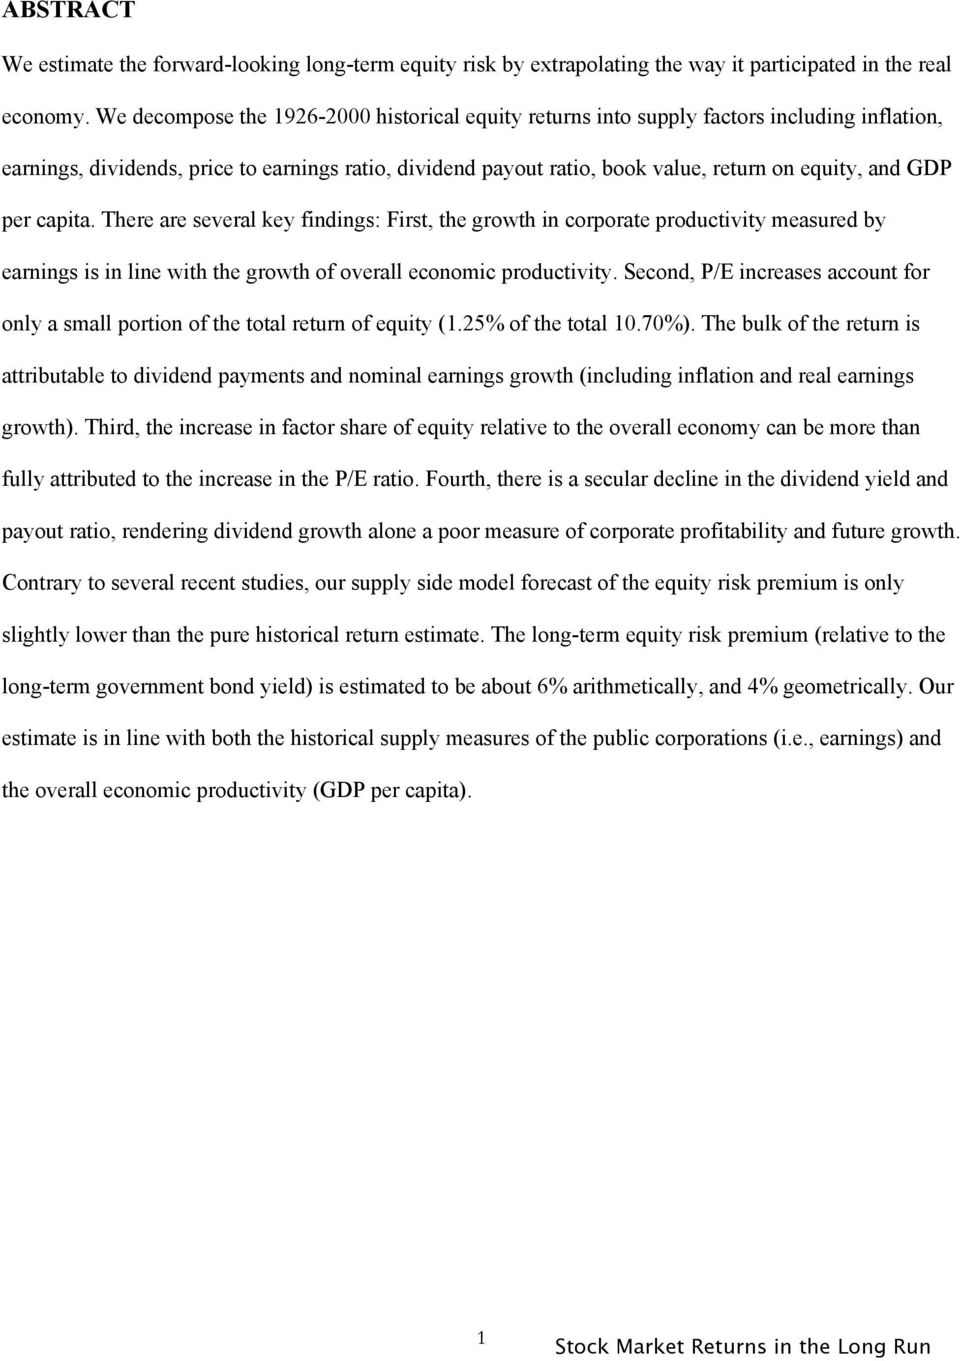 There are several key findings: Firs, he growh in corporae produciviy measured by earnings is in line wih he growh of overall economic produciviy.